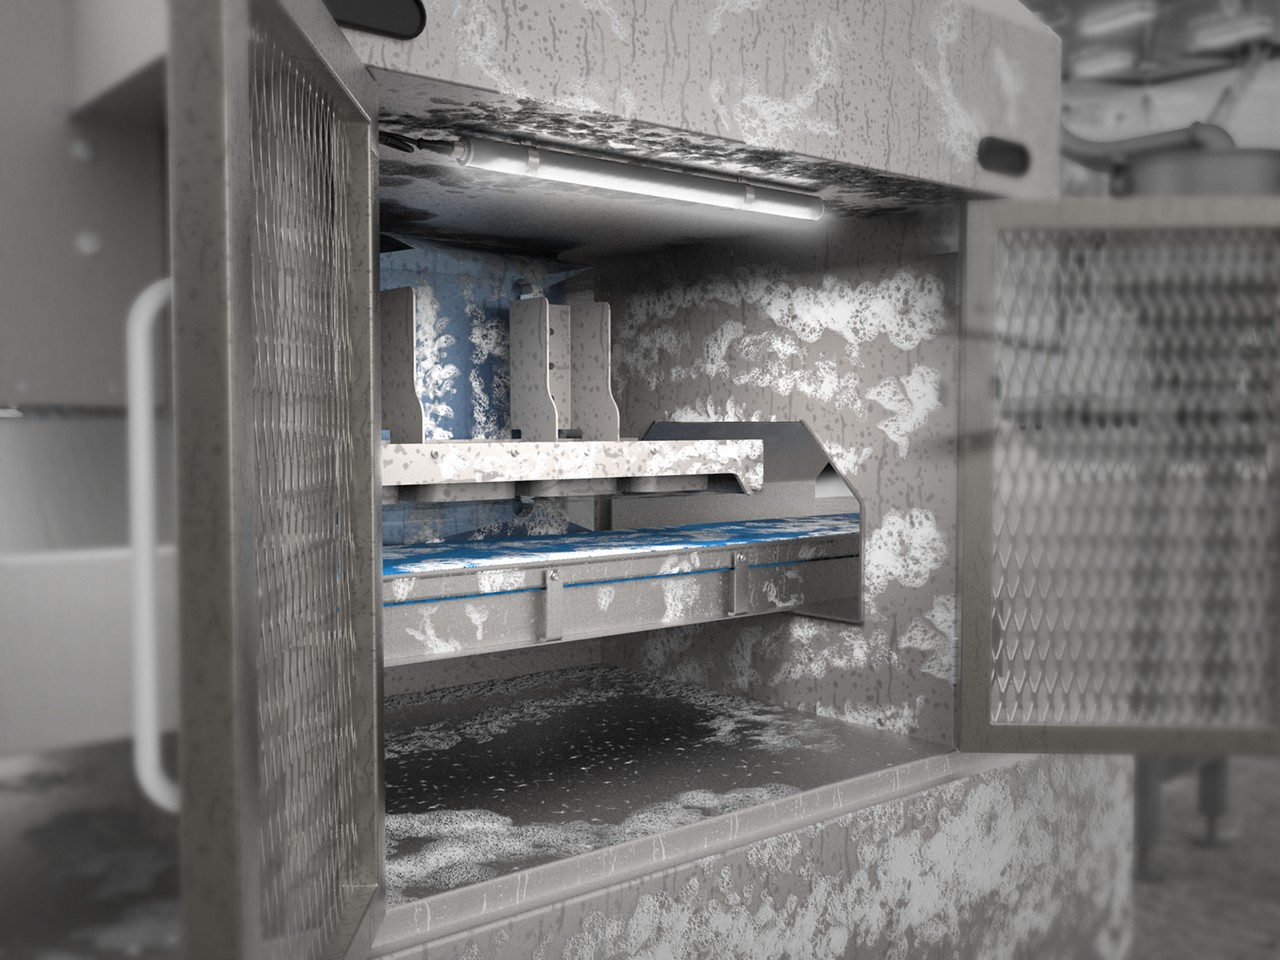 machine lighting in a freezer